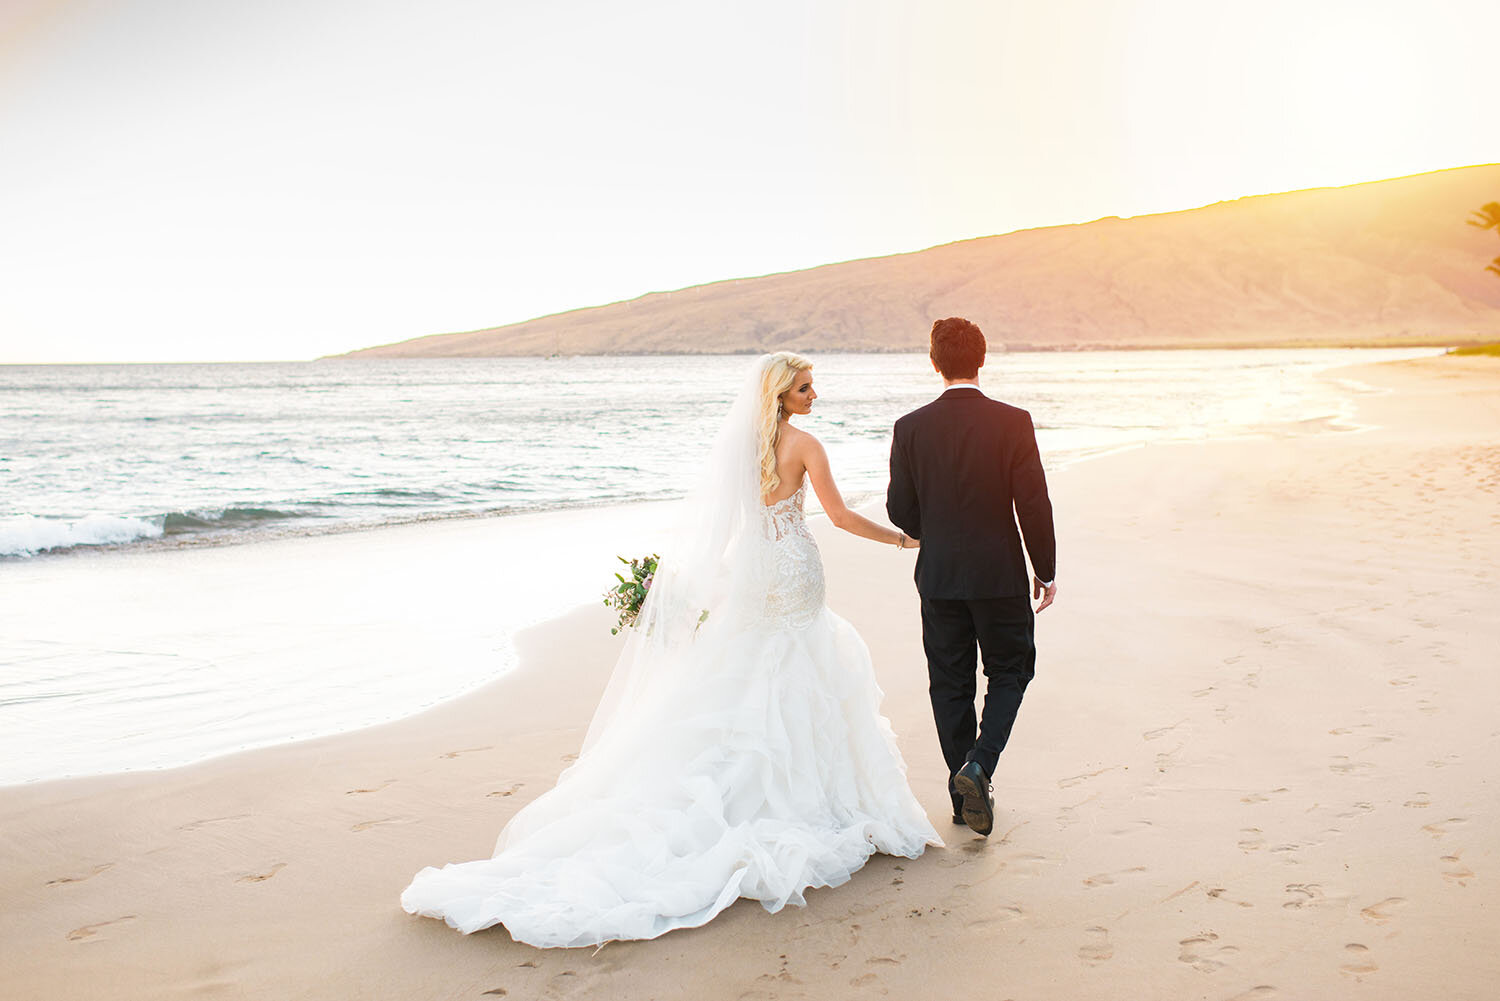 luxury-maui-beach-wedding-packages-bliss-Mr.andMrs.Cunningham.jpg